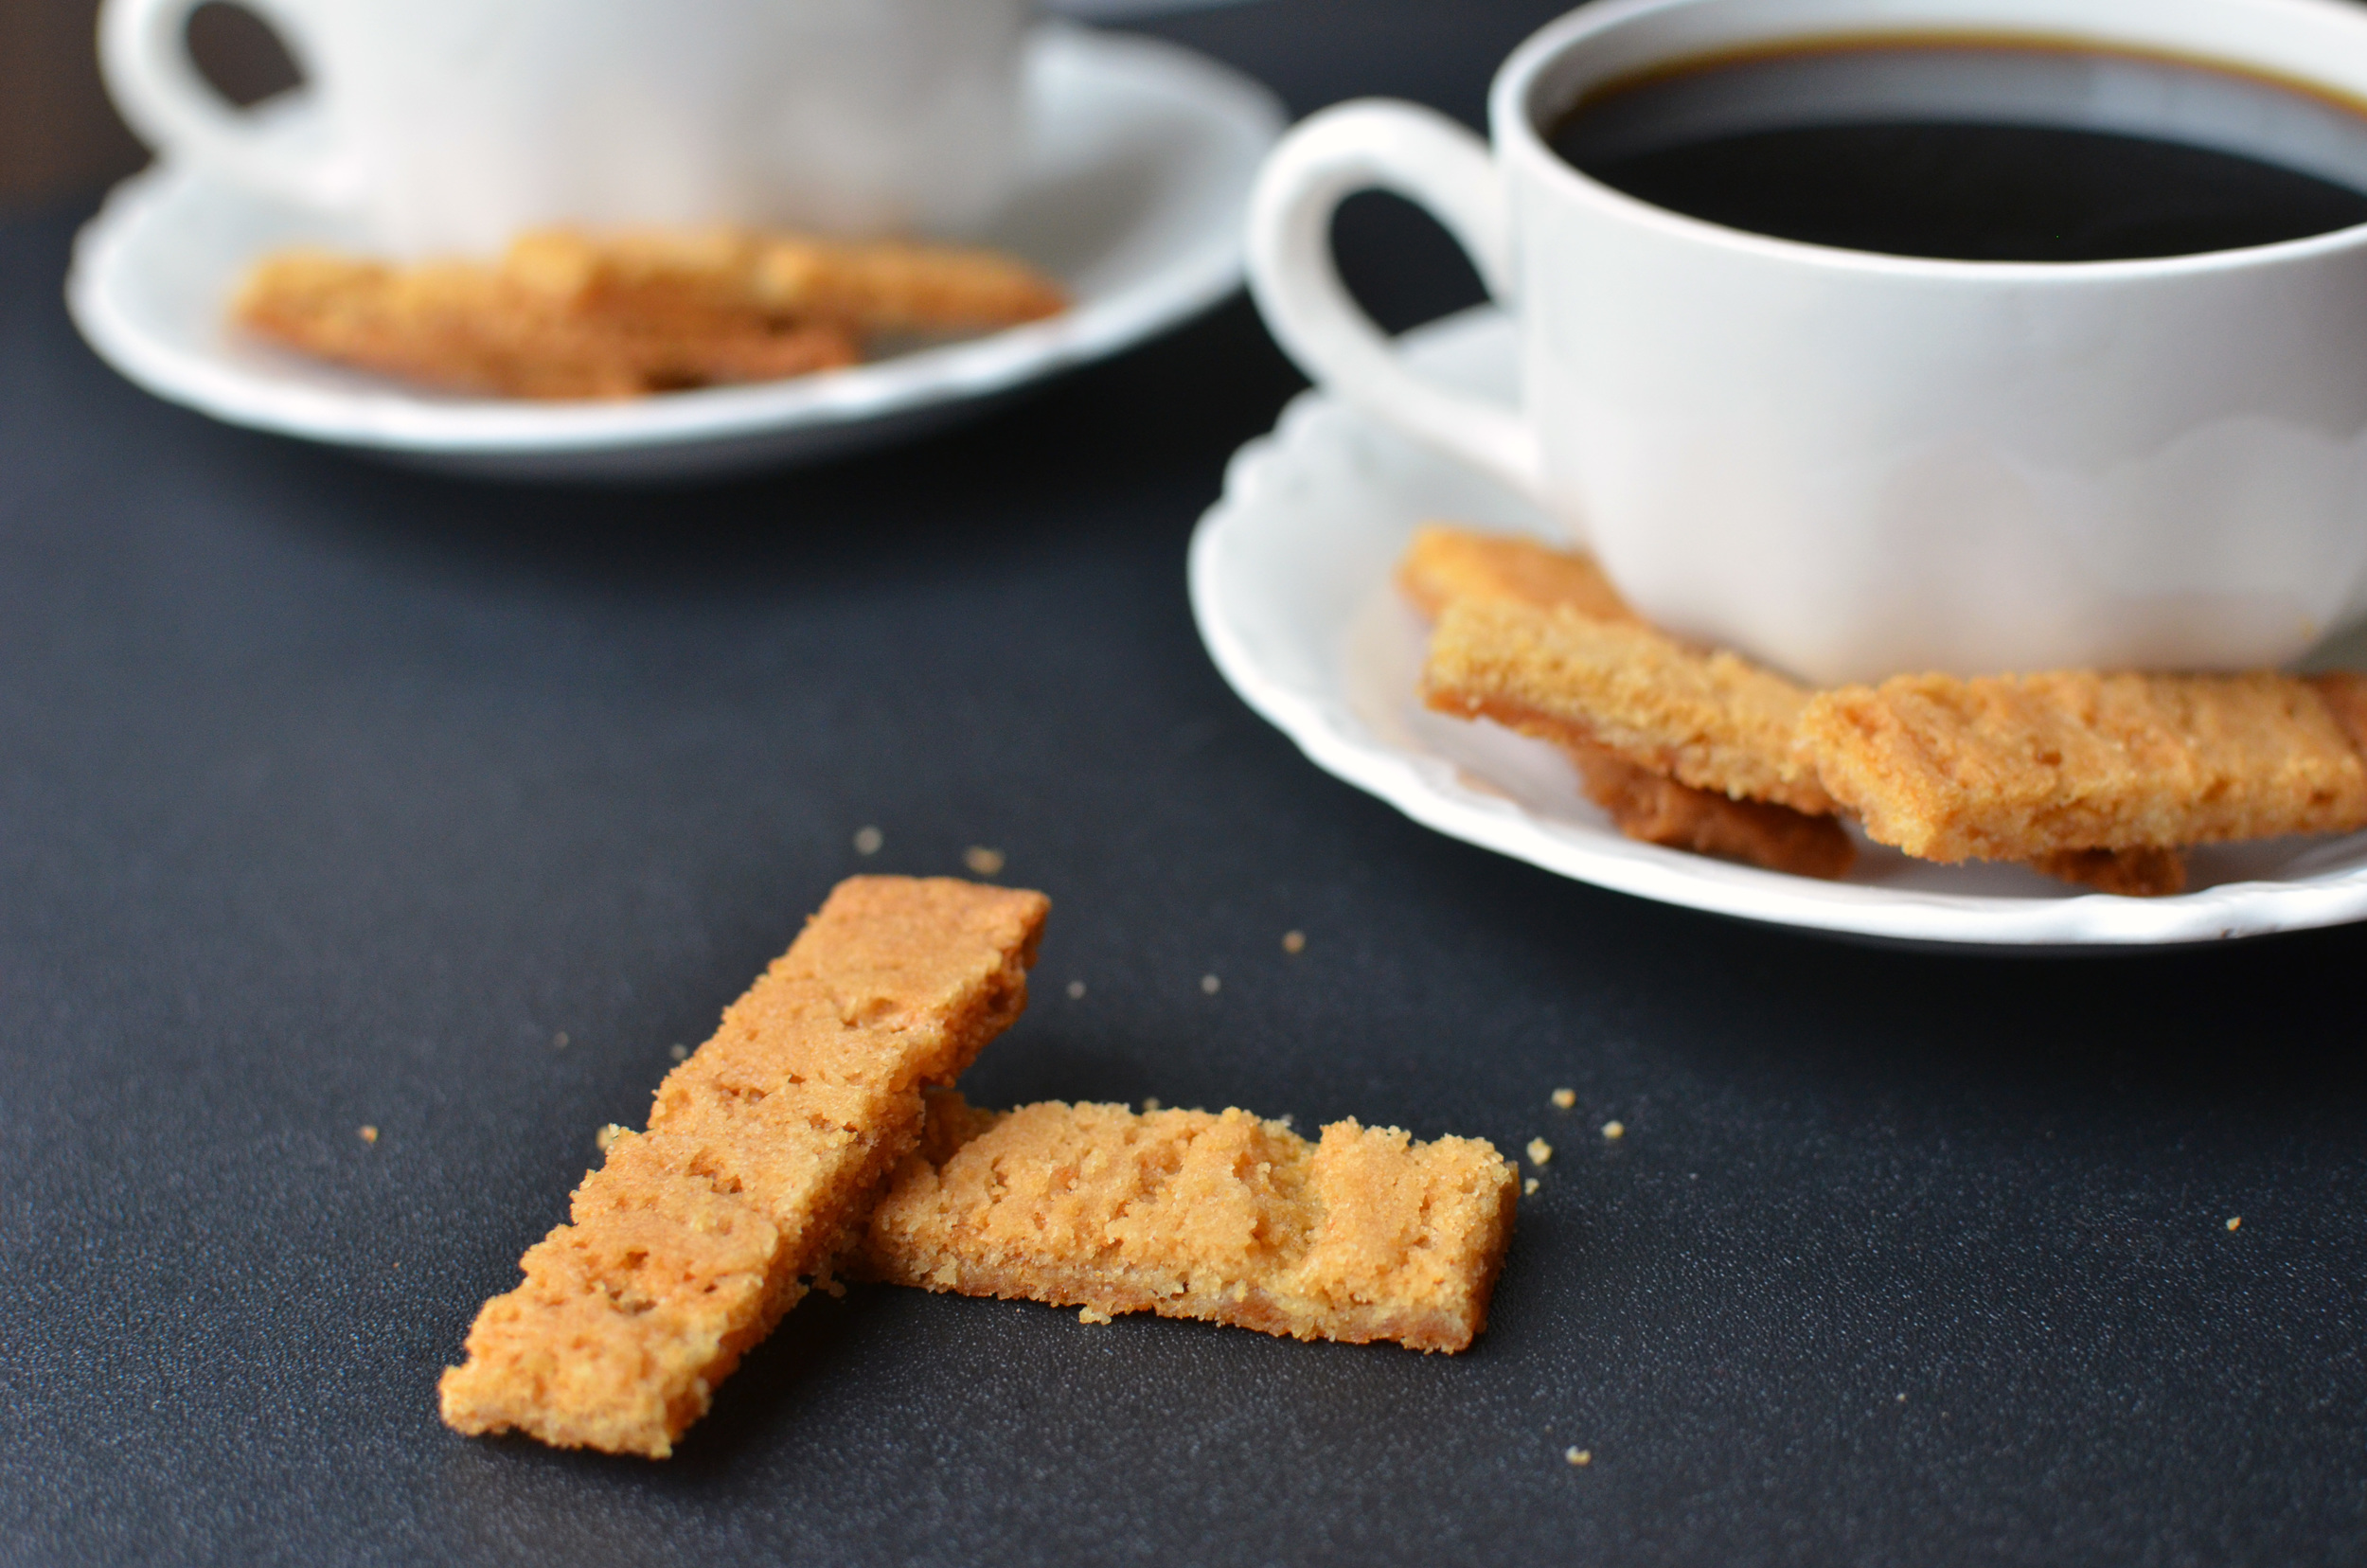 Bruna Kakor (Swedish Brown Cookies) - ButterYum — how to make cookies with lyle's golden syrup.  golden syrup cookies.  crack cookies.  penzey's cookie recipe.  lyle's golden syrup recipes.  chewy, caramelized cookies.  lyle's golden syrup caramel cookies.